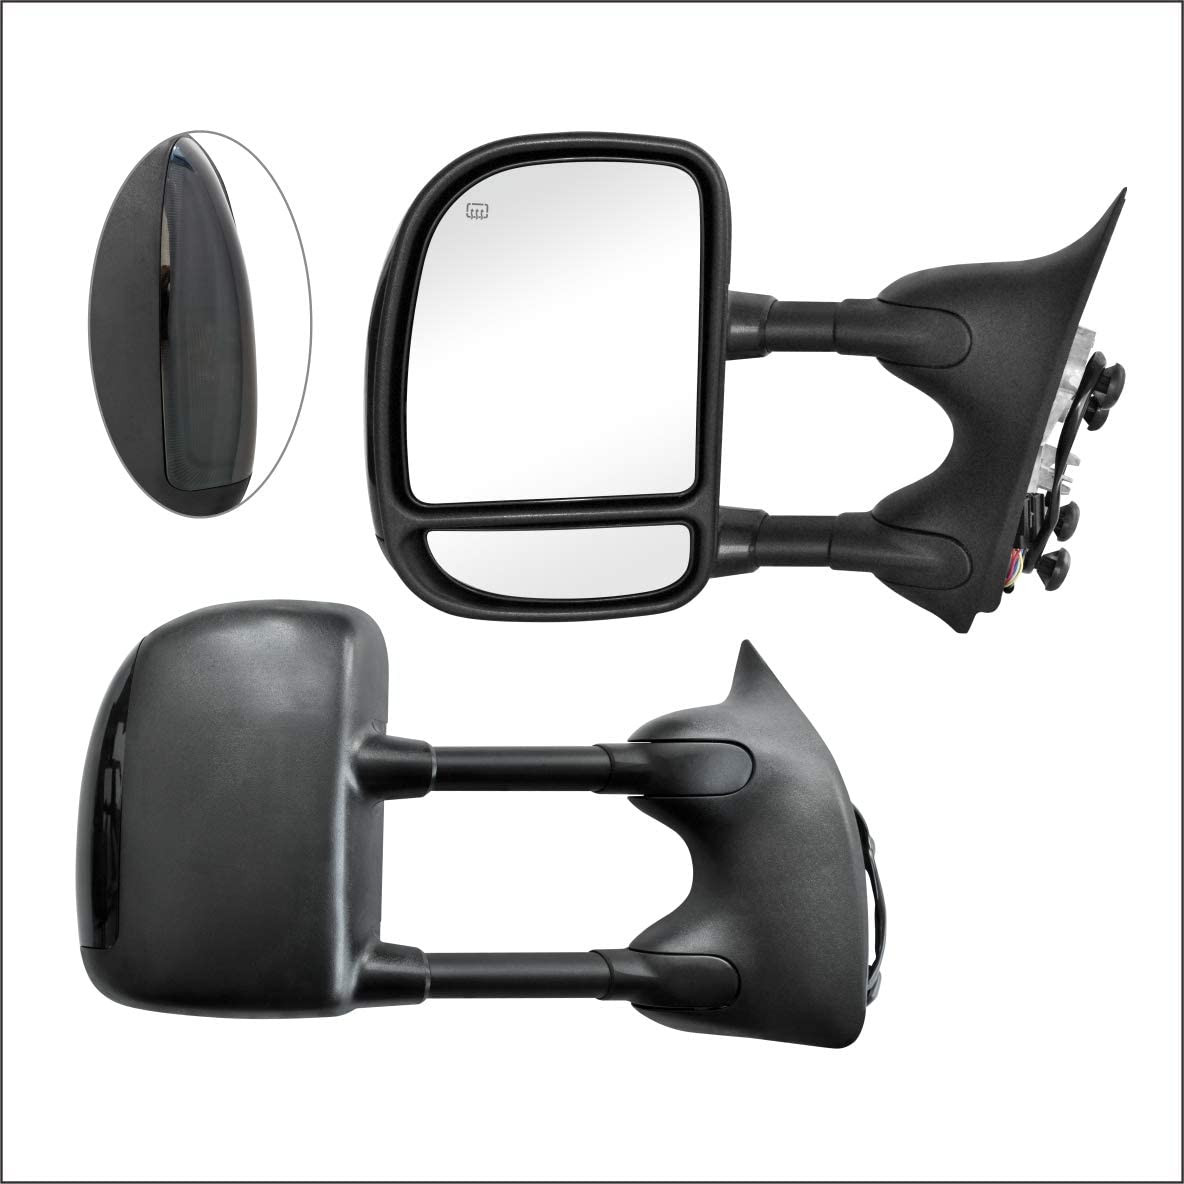 Perfit Zone Towing Mirrors Replacement Fit for 1999-2007 F-250 F